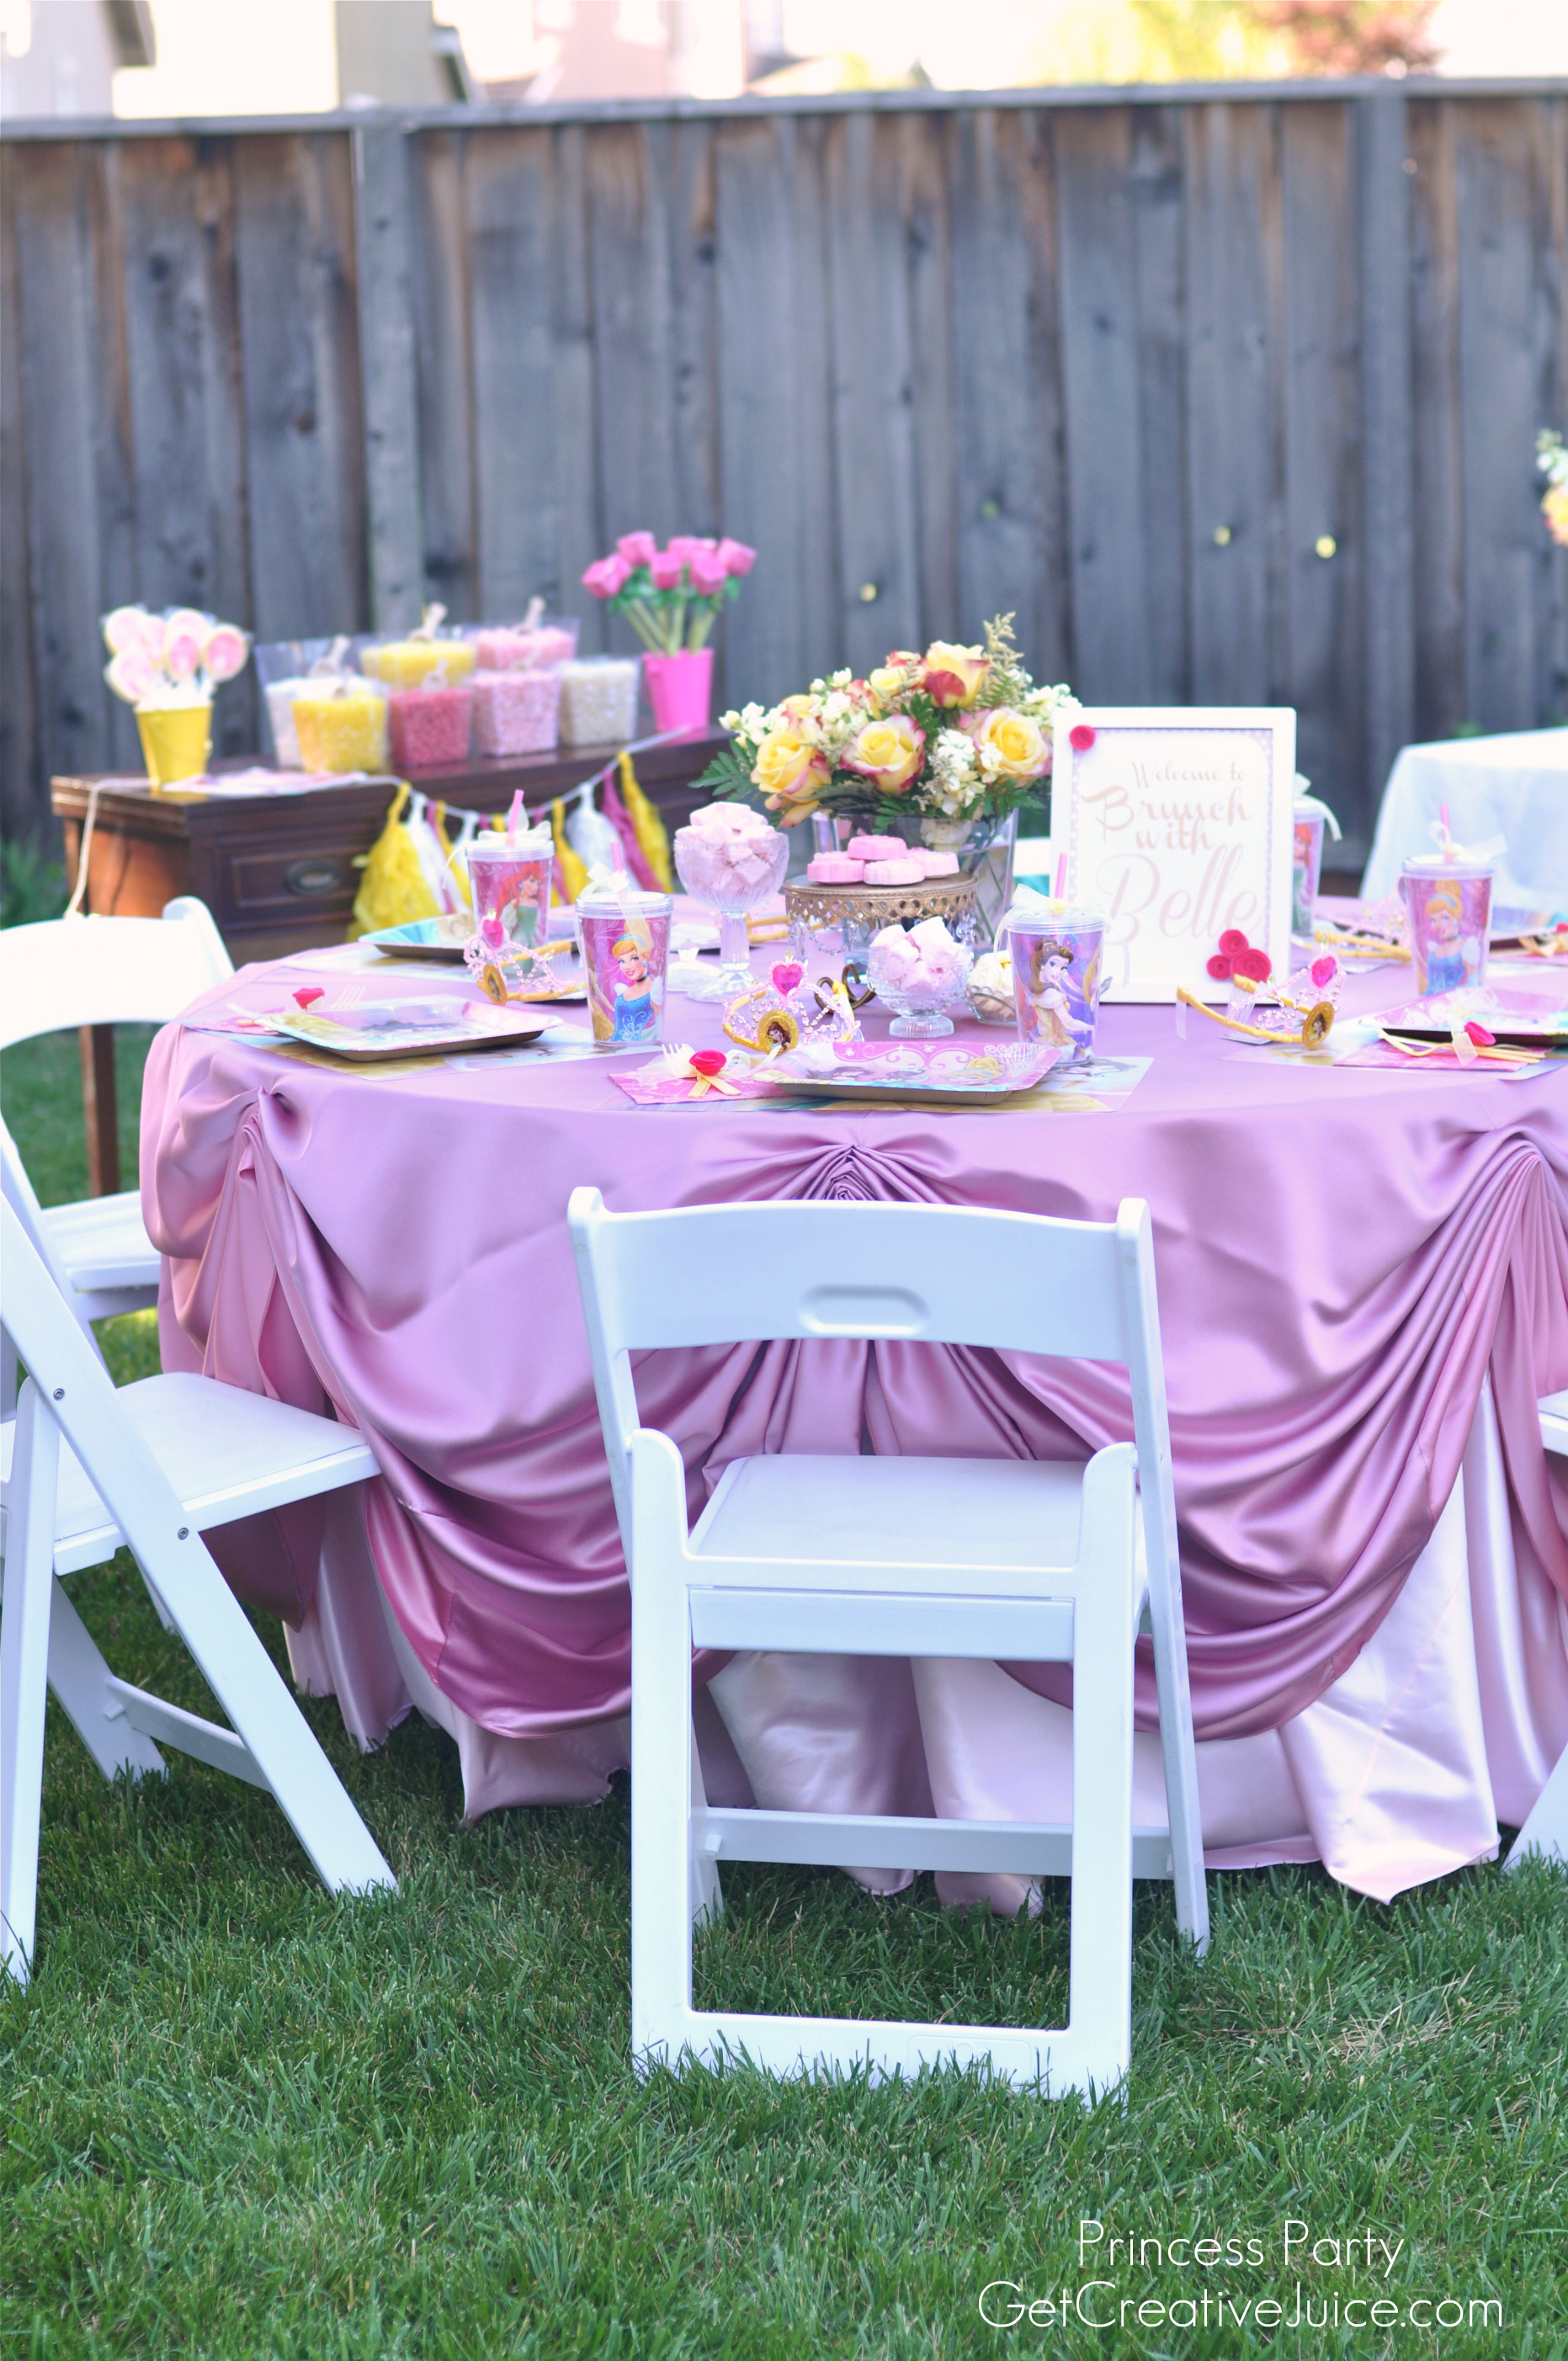 Best ideas about Table Decoration Ideas For Birthday Party . Save or Pin Disney Princess Party with Belle Part e Creative Juice Now.